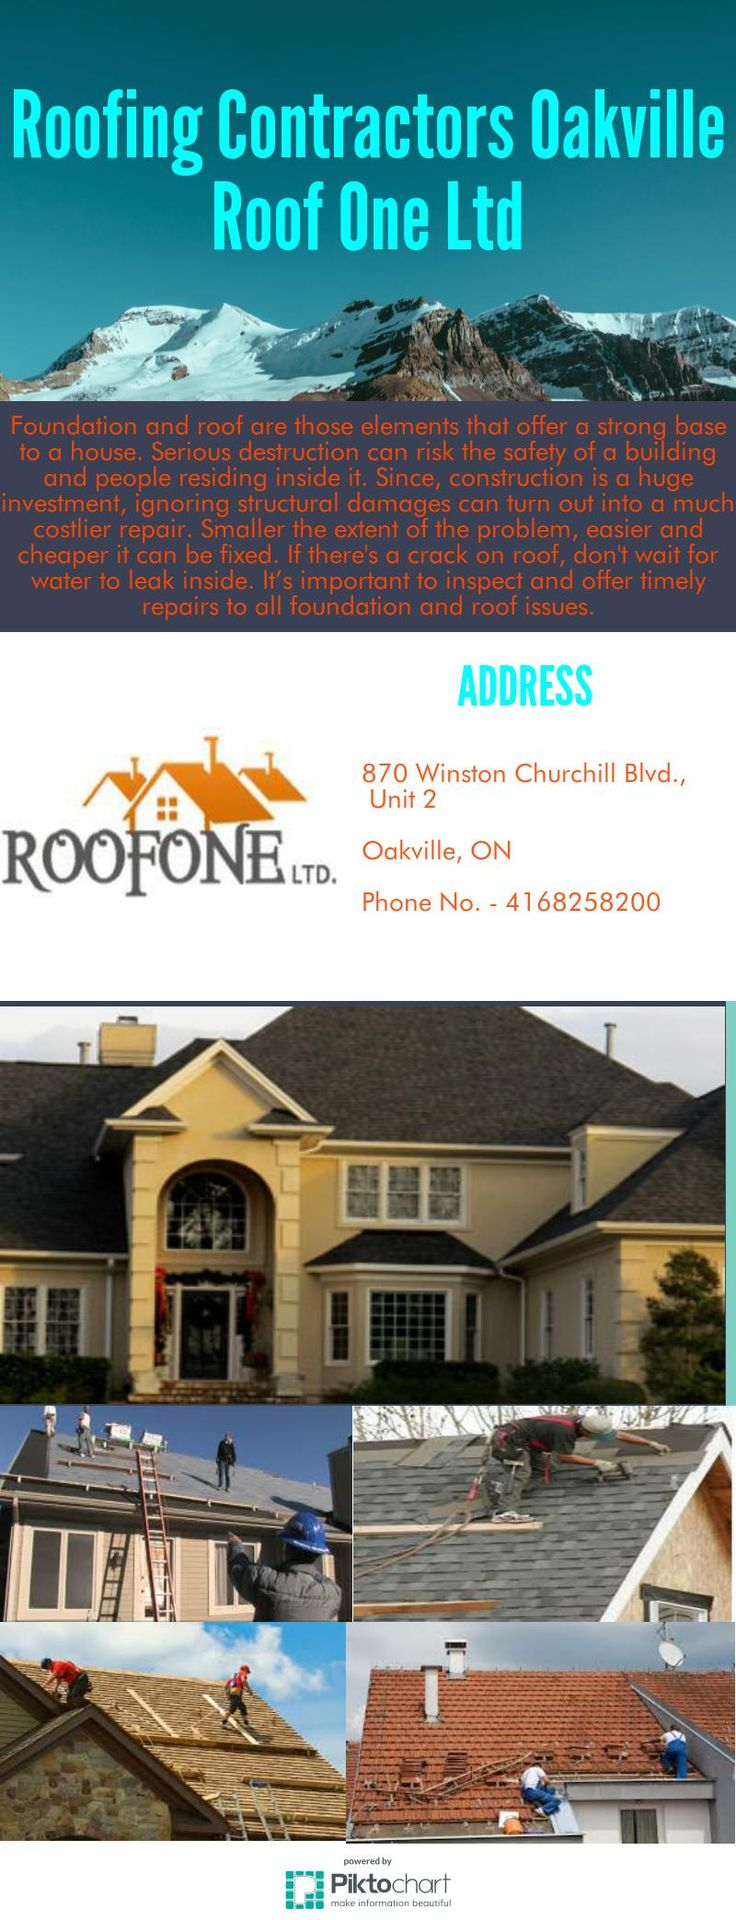 Single storey home flat roof future vertical expansion 6 social side - Roof One Ltd Is An 15 Years Experienced Roofing Contractor In Oakville We Also Provide Appropriate Advice For Material As Per Architecture